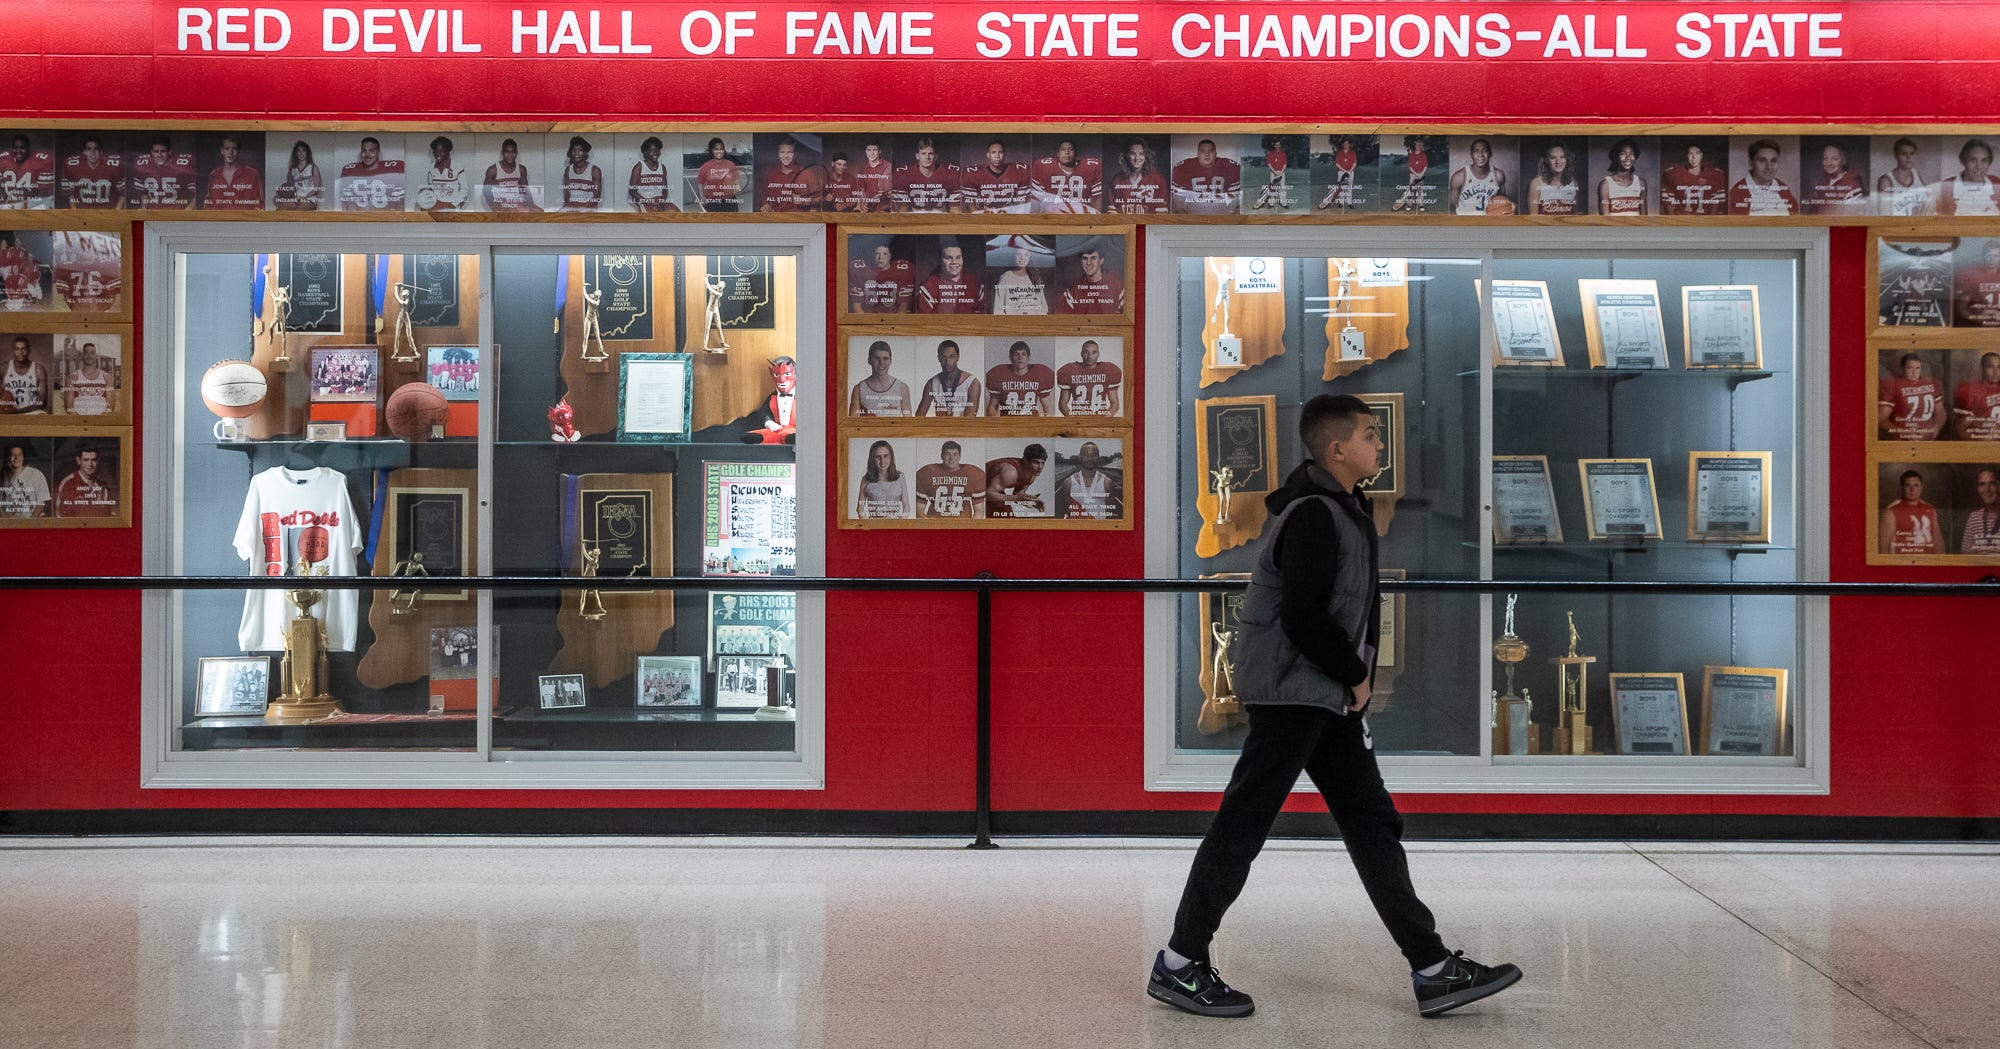 In front of the Red Devil Hall of Fame wall, Taysen Stewart, 11, of Richmond, Ind., follows closely behind his parents as they make their way to their seats for the Richmond Red Devils' home boys varsity game against the Kokomo Wildkats in Richmond, Ind., on Friday, Feb. 14, 2020.